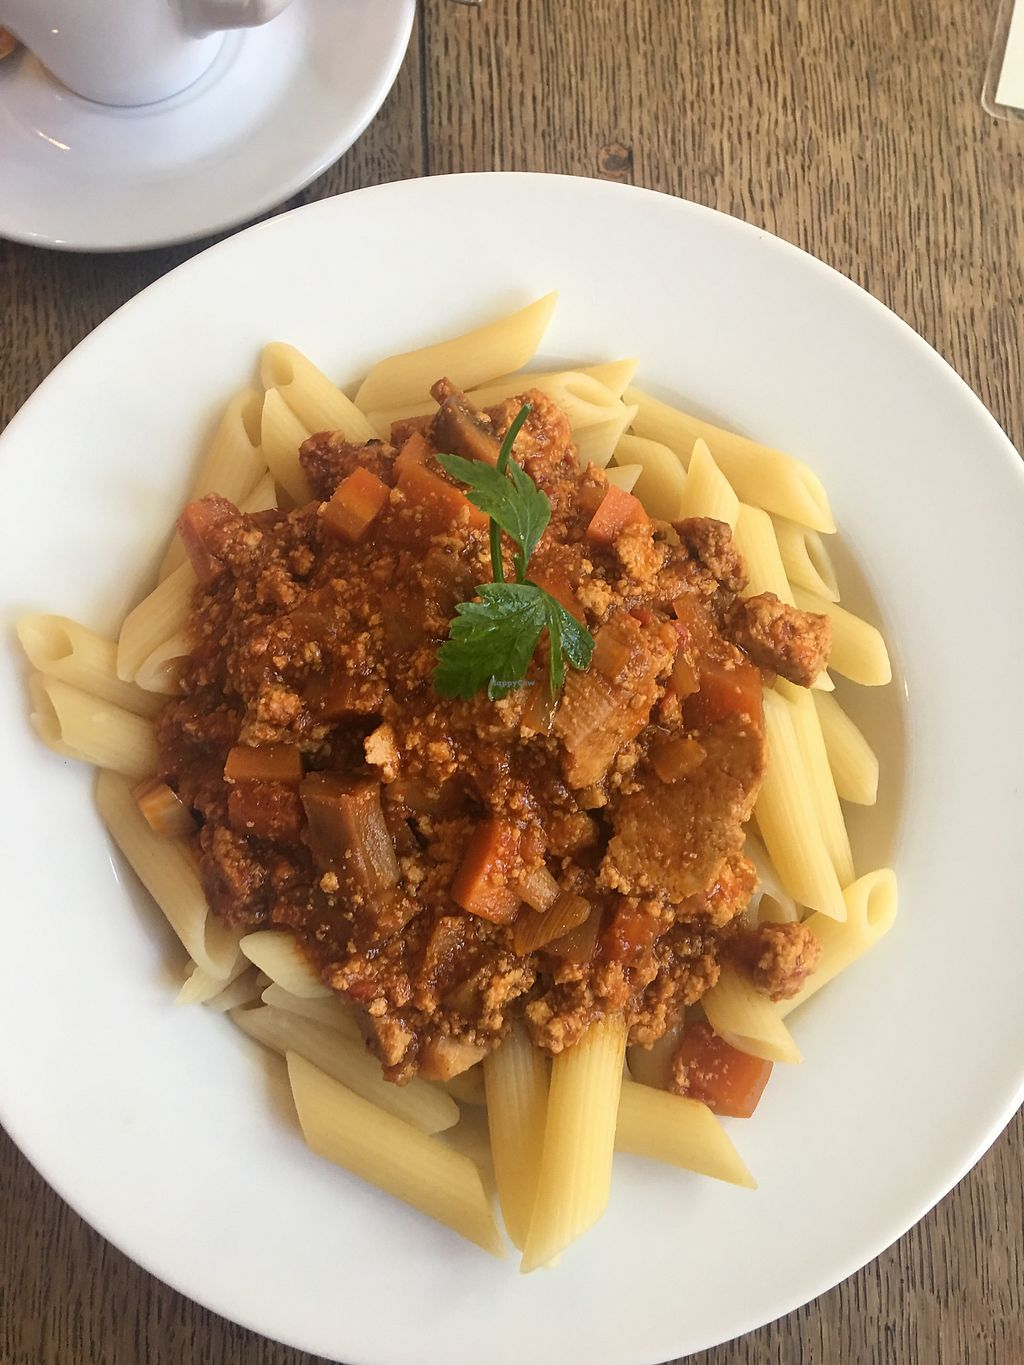 "Photo of Cafe Koppel  by <a href=""/members/profile/edajoir"">edajoir</a> <br/>Tofu bolognese pasta <br/> September 16, 2017  - <a href='/contact/abuse/image/16259/304997'>Report</a>"